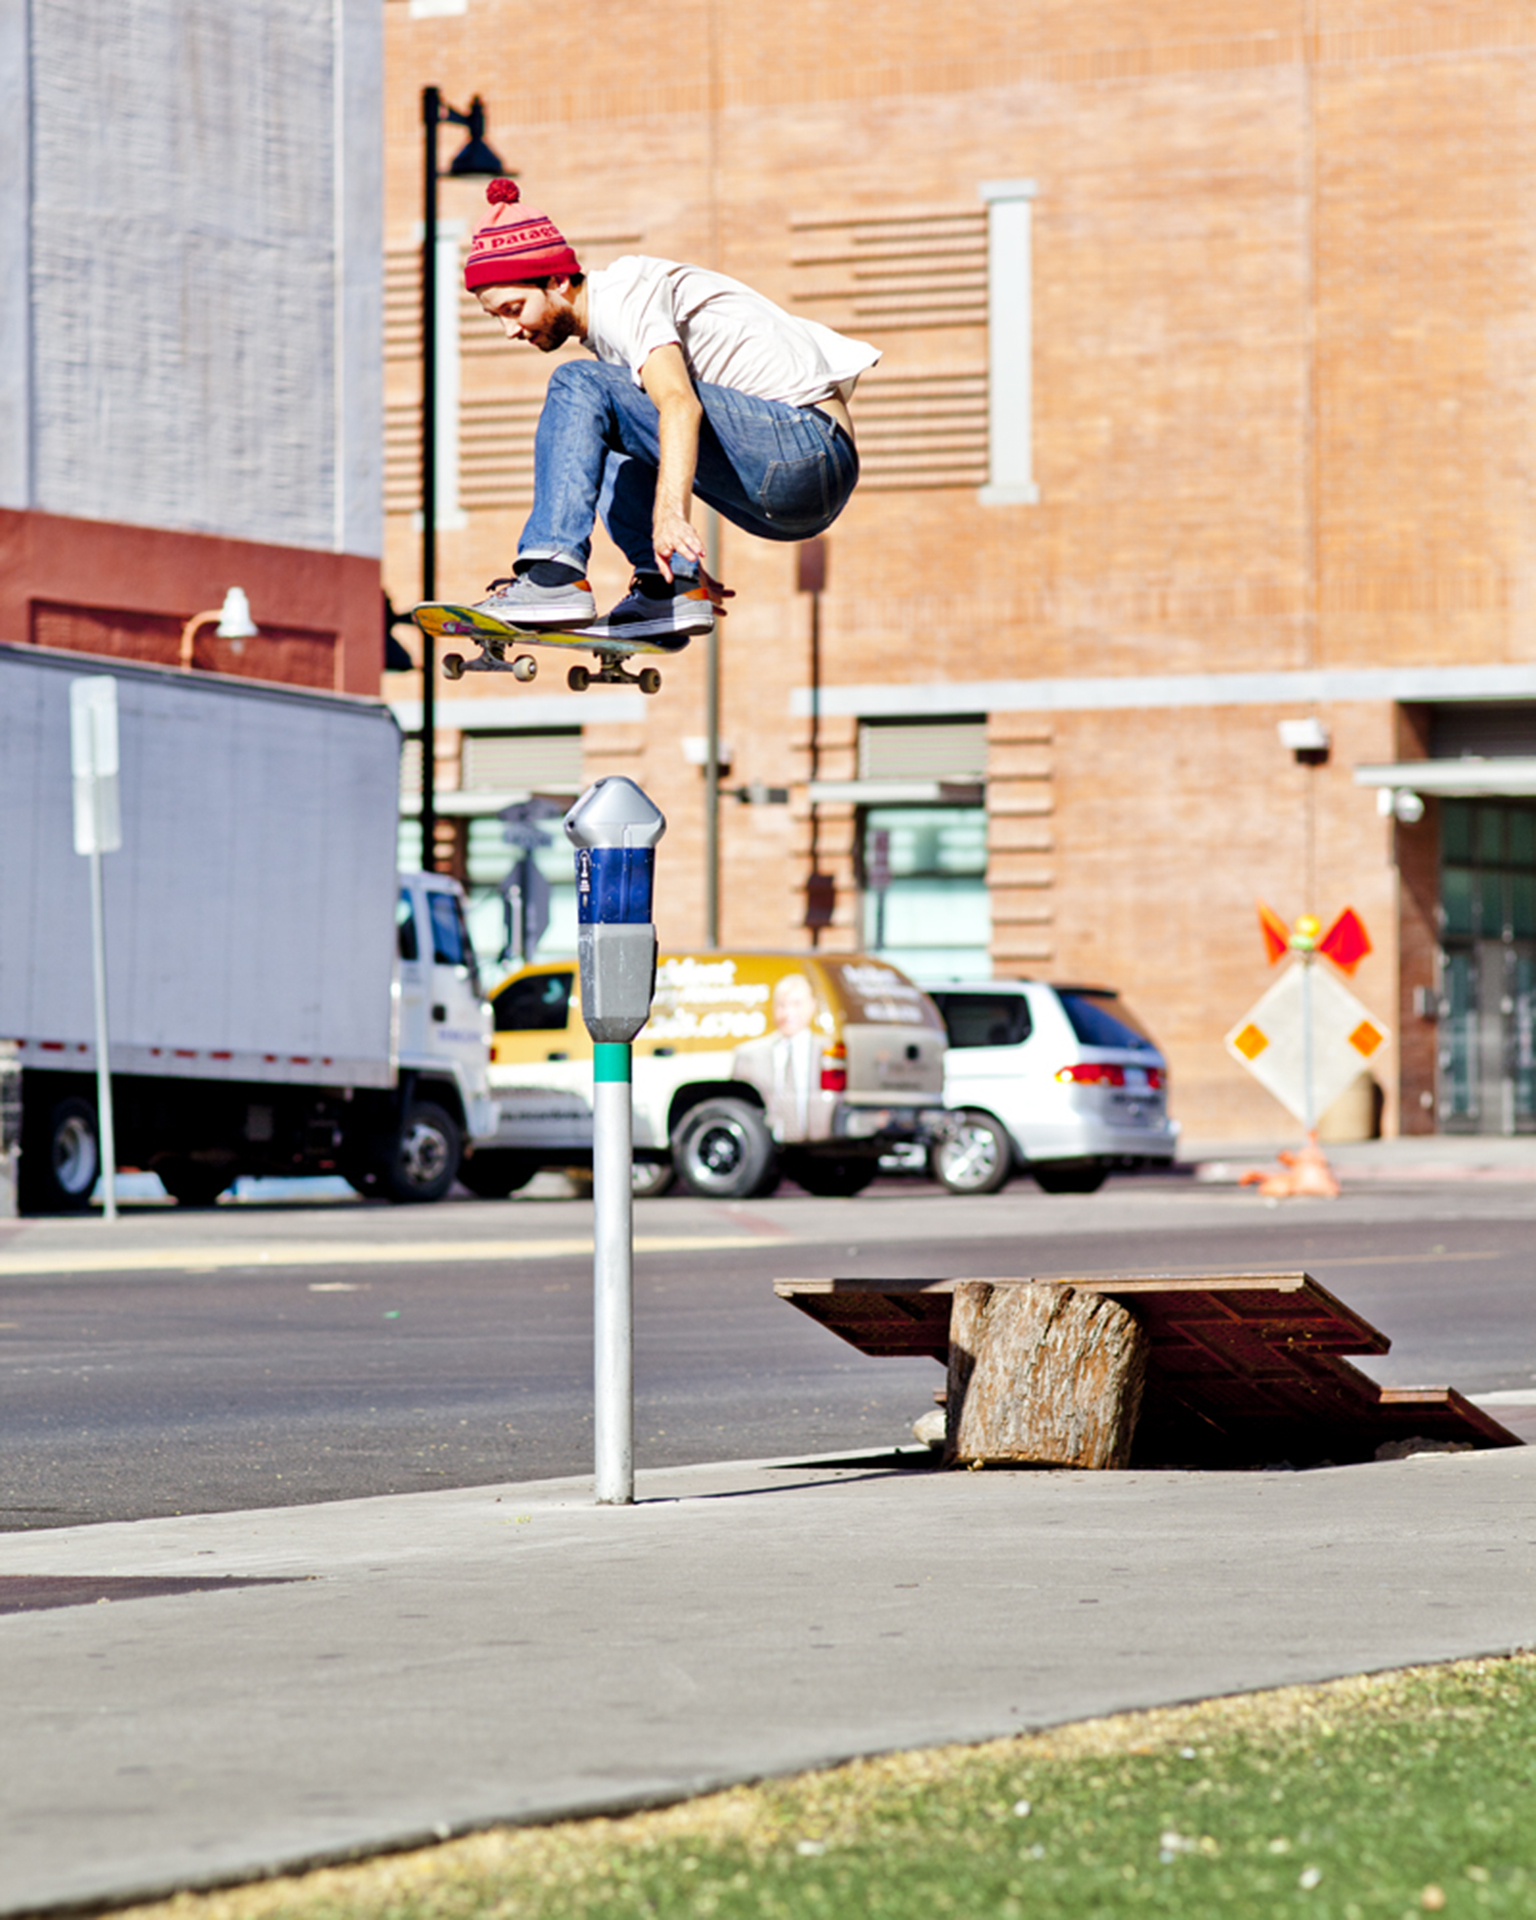 Ollie on home turf in Phoenix, Arizona from Lay.